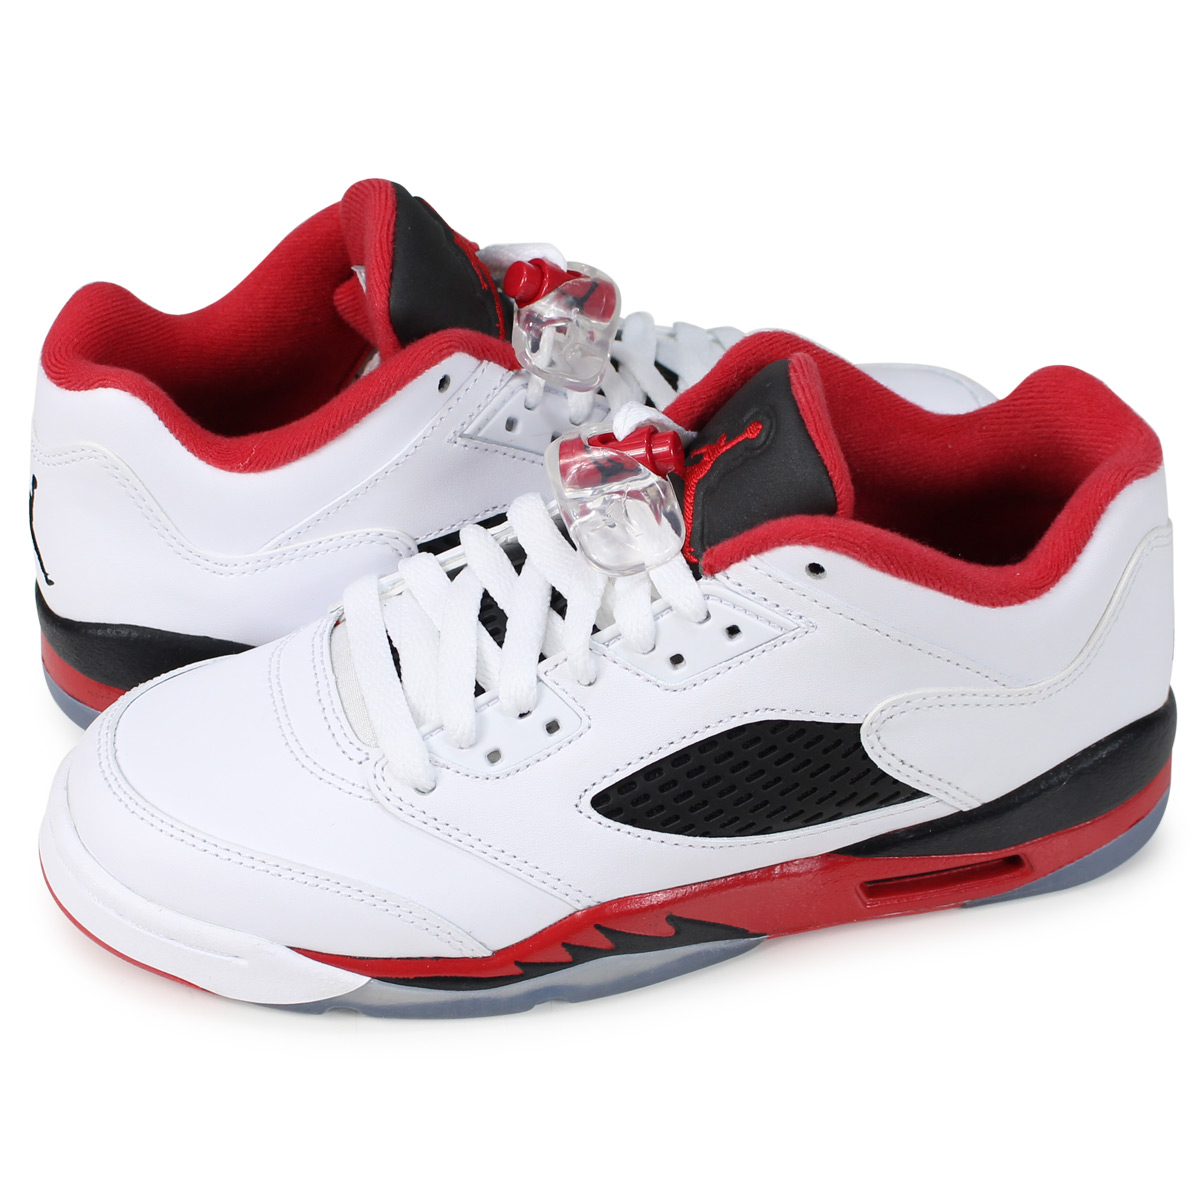 wholesale dealer a2a94 8a926 Nike NIKE Air Jordan 5 nostalgic lady's sneakers AIR JORDAN 5 RETRO LOW GS  FIRE RED white 314,338-101 [load planned Shinnyu load in reservation ...